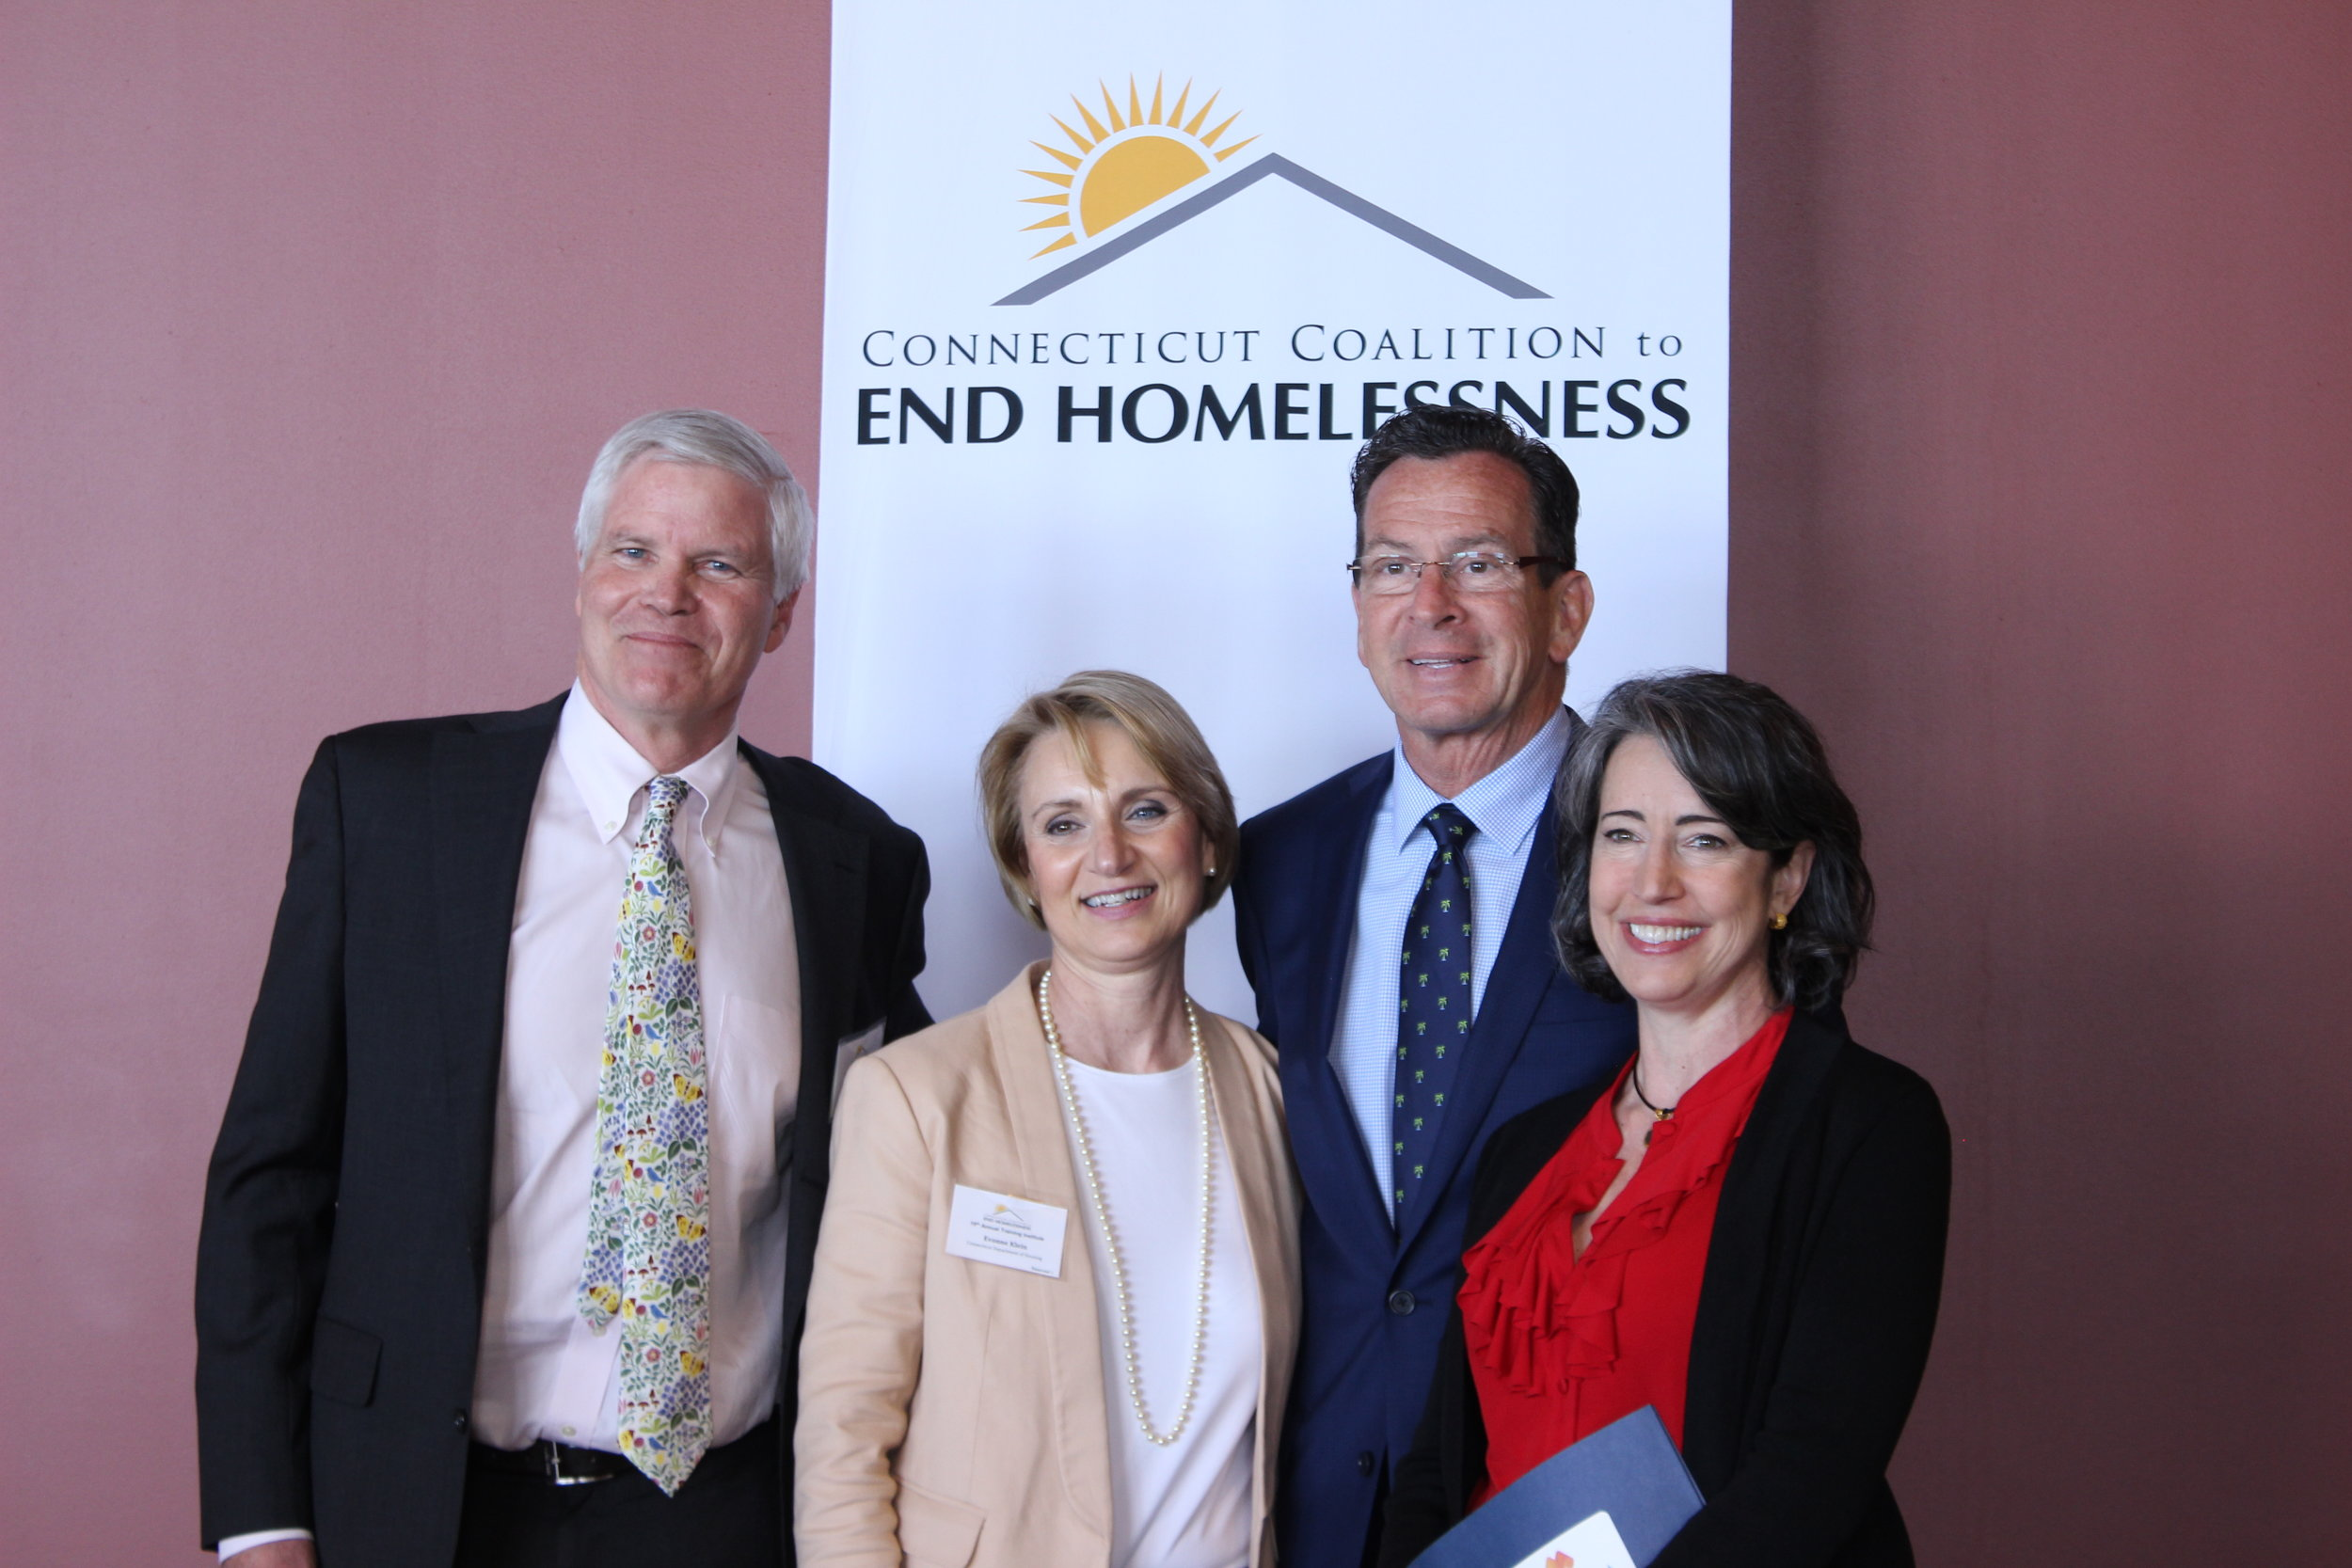 Left to Right: David Rich (Supportive Housing Works), Commissioner of Housing Evonne M. Klein, Governor Dannel P. Malloy, and Lisa Tepper Bates (Connecticut Coalition to End Homelessness).